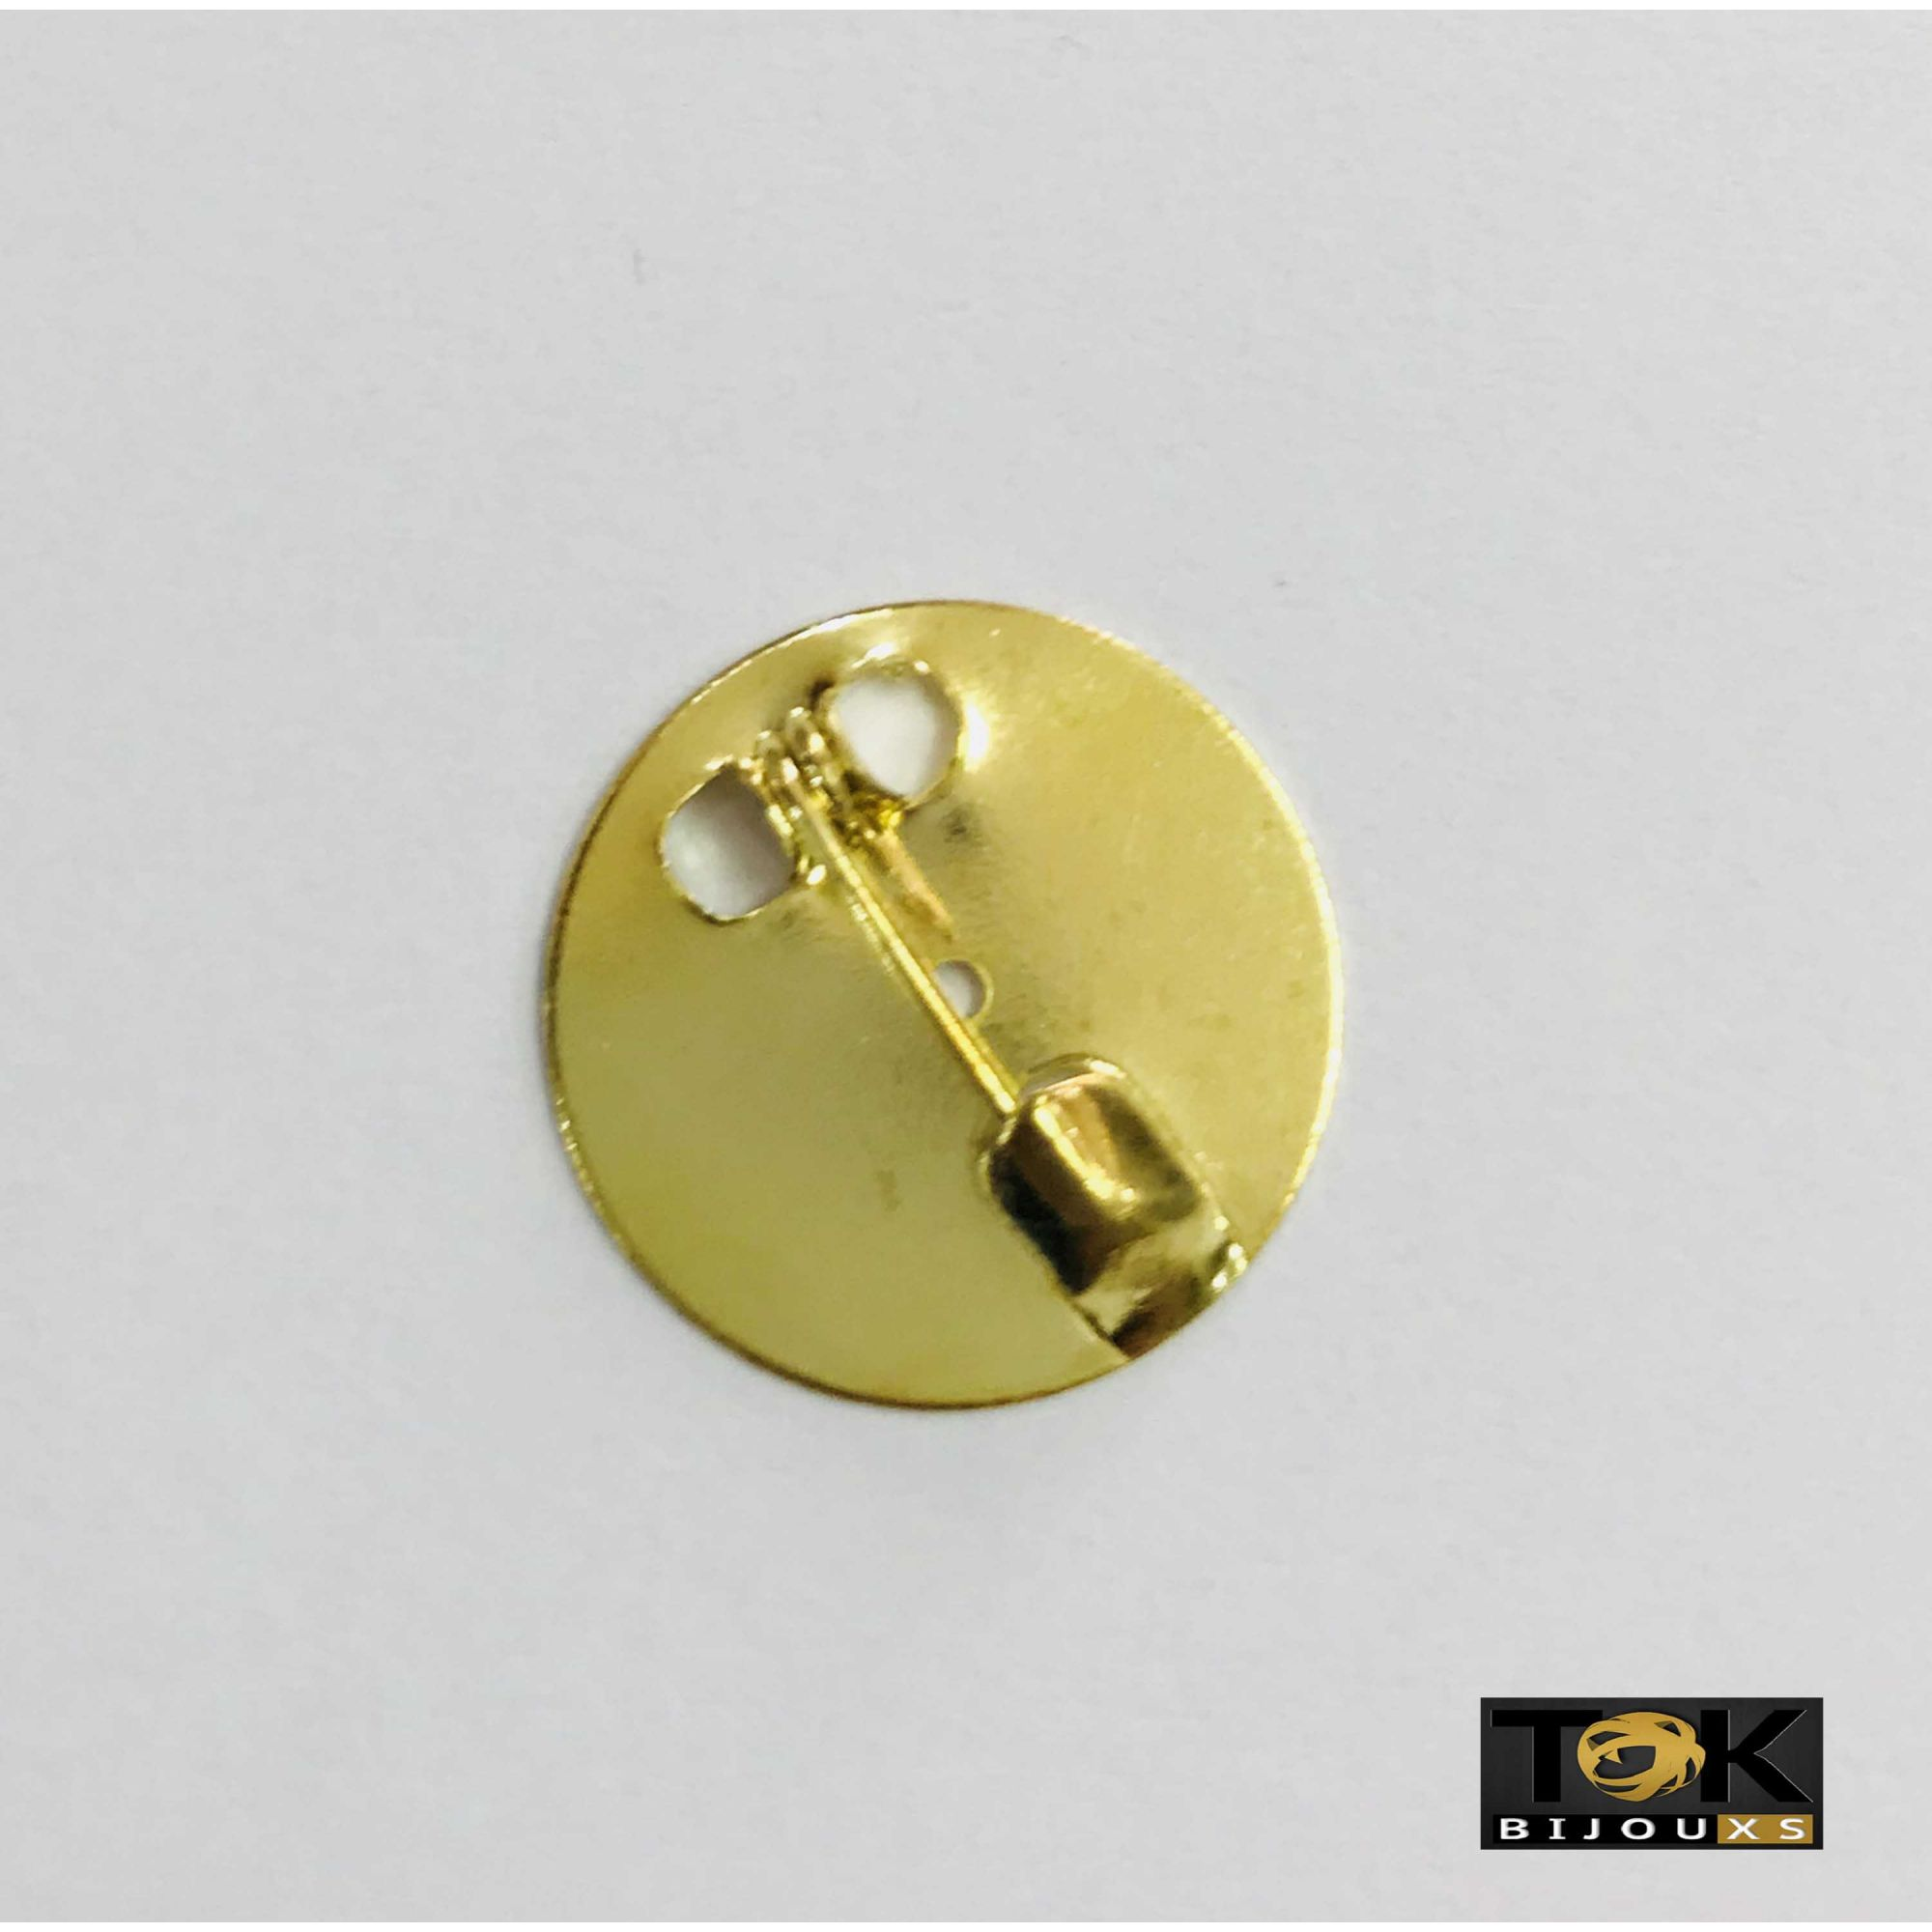 Base De Broche Redonda - Dourado - 25mm - 25 Unid